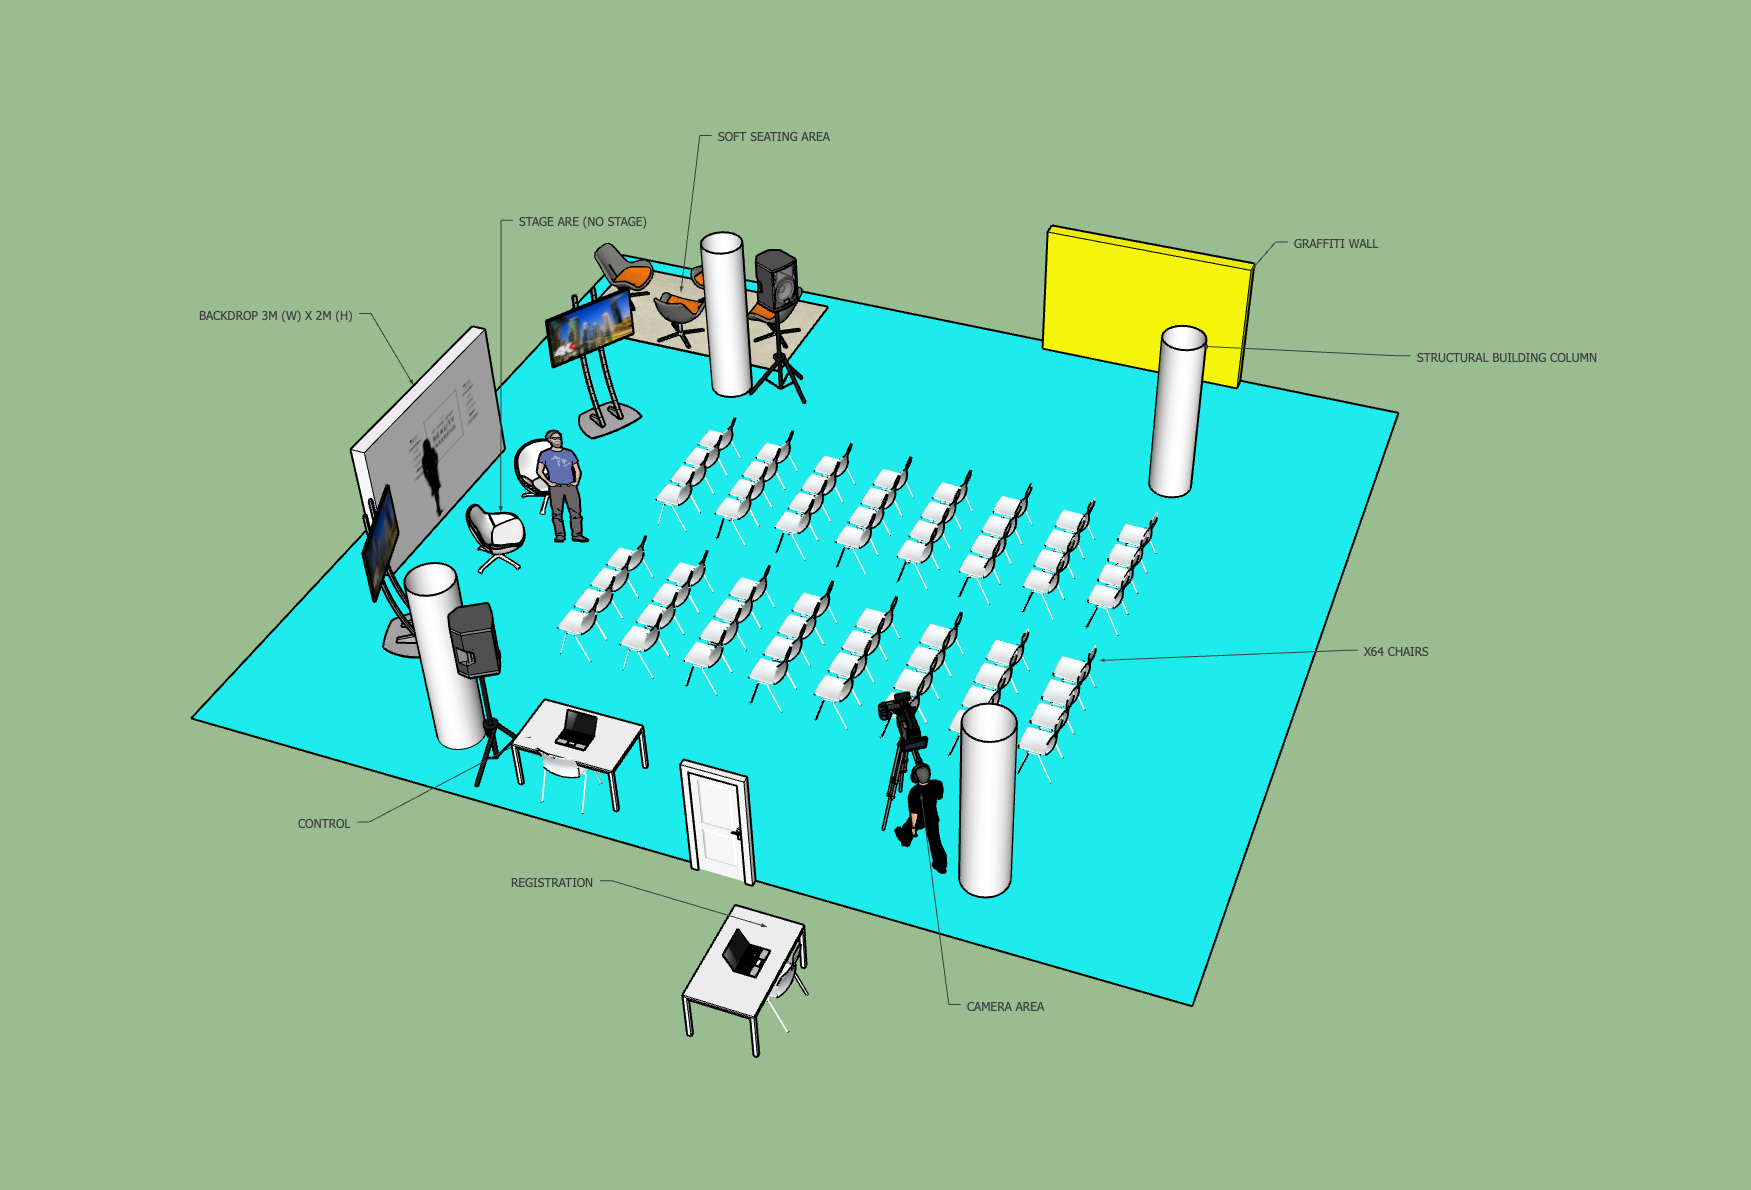 Creating a 3D impression of your event